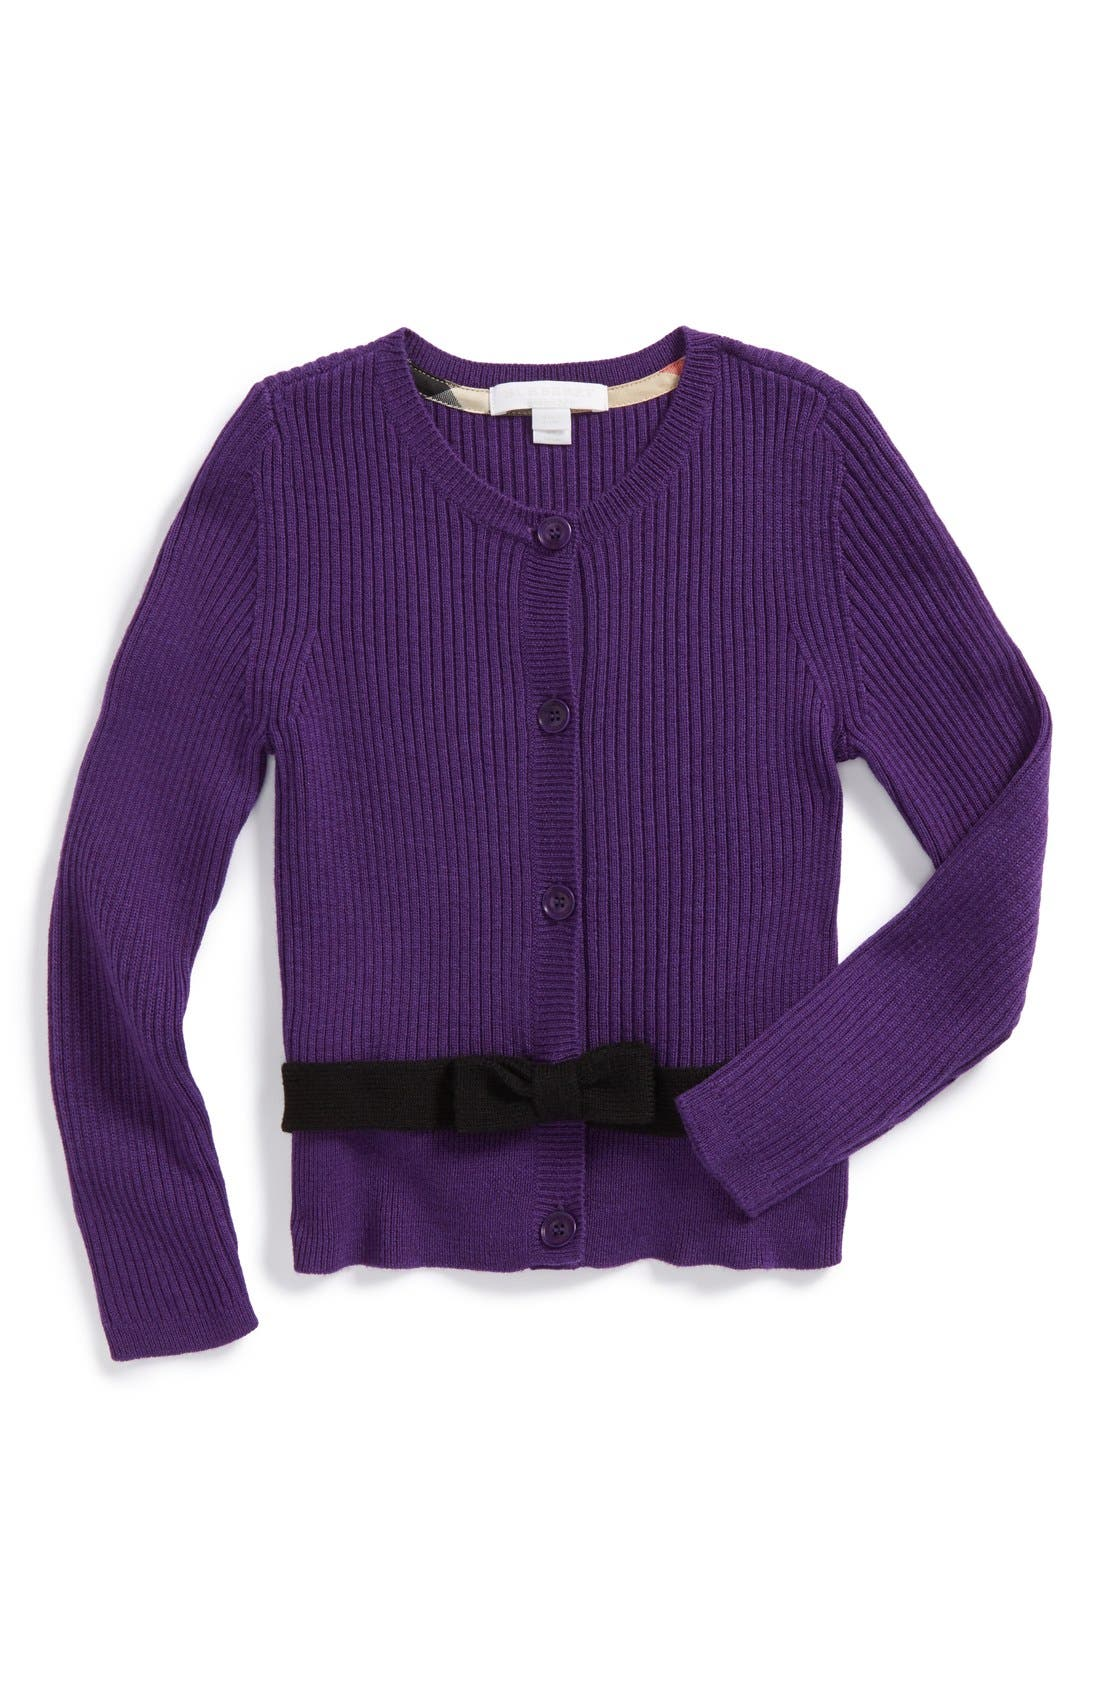 Alternate Image 1 Selected - Burberry Merino Wool Cardigan (Little Girls & Big Girls)